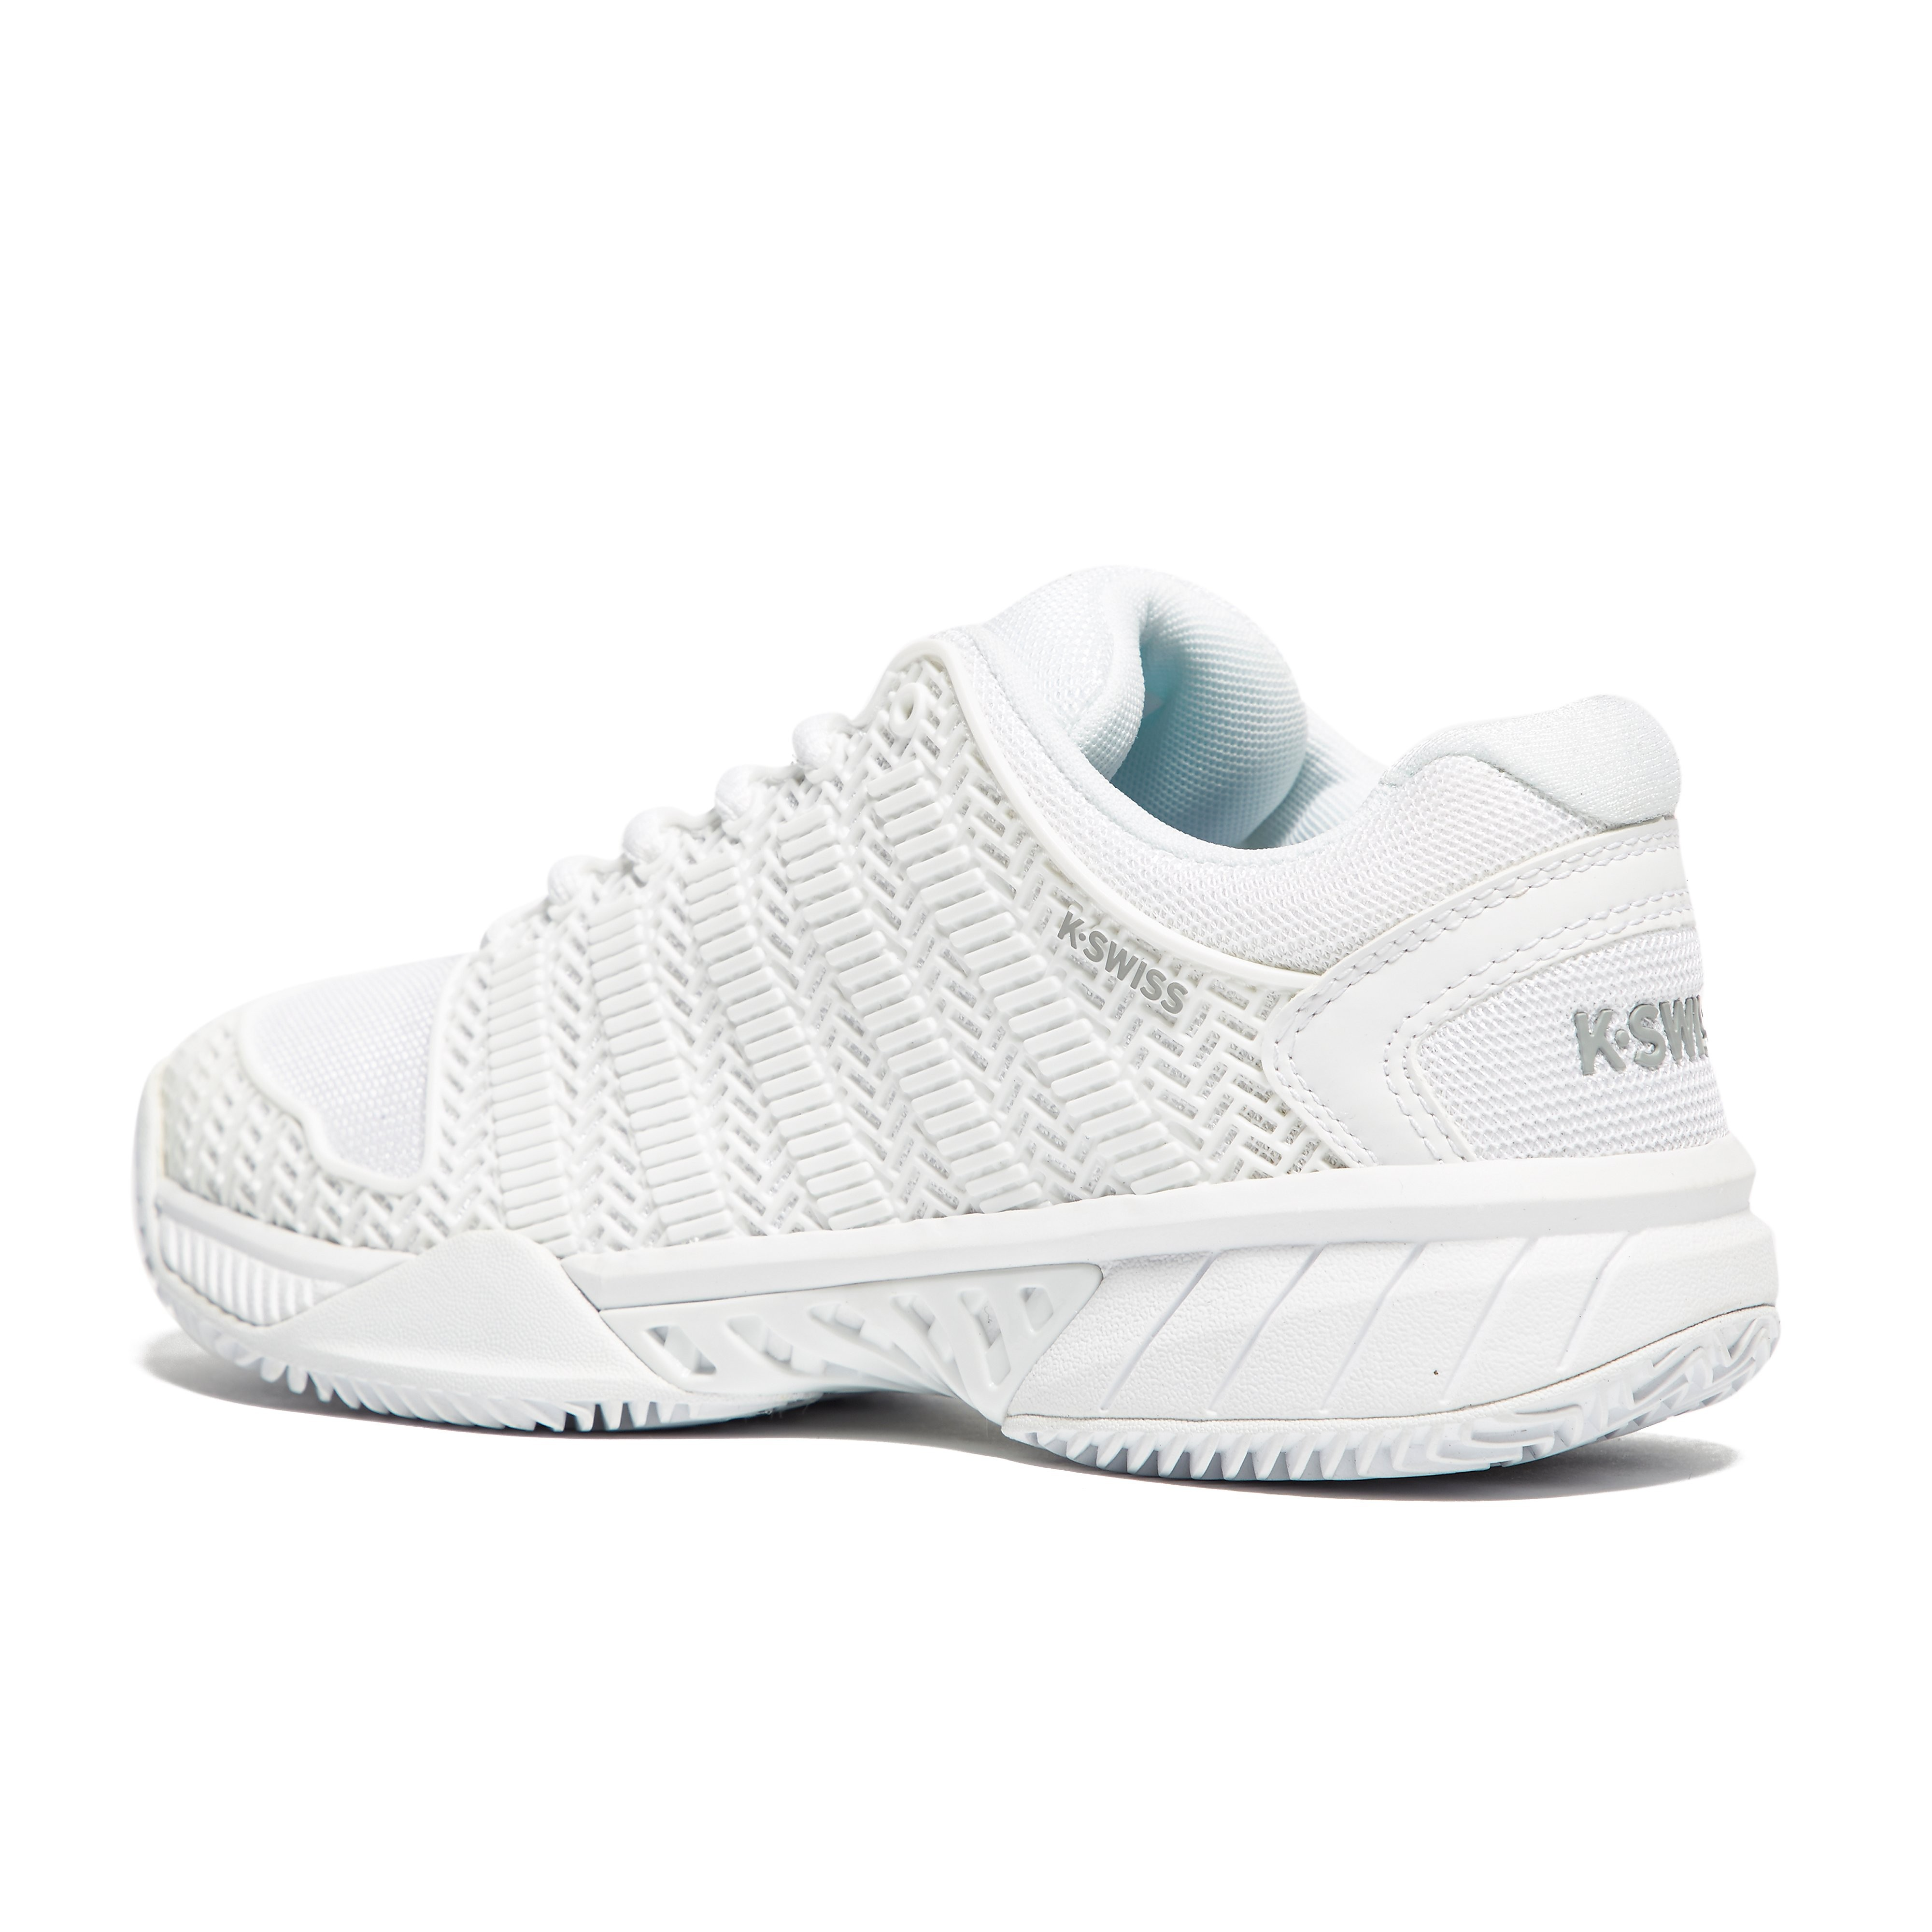 K-Swiss Hypercourt Express HB Women's Tennis Shoes